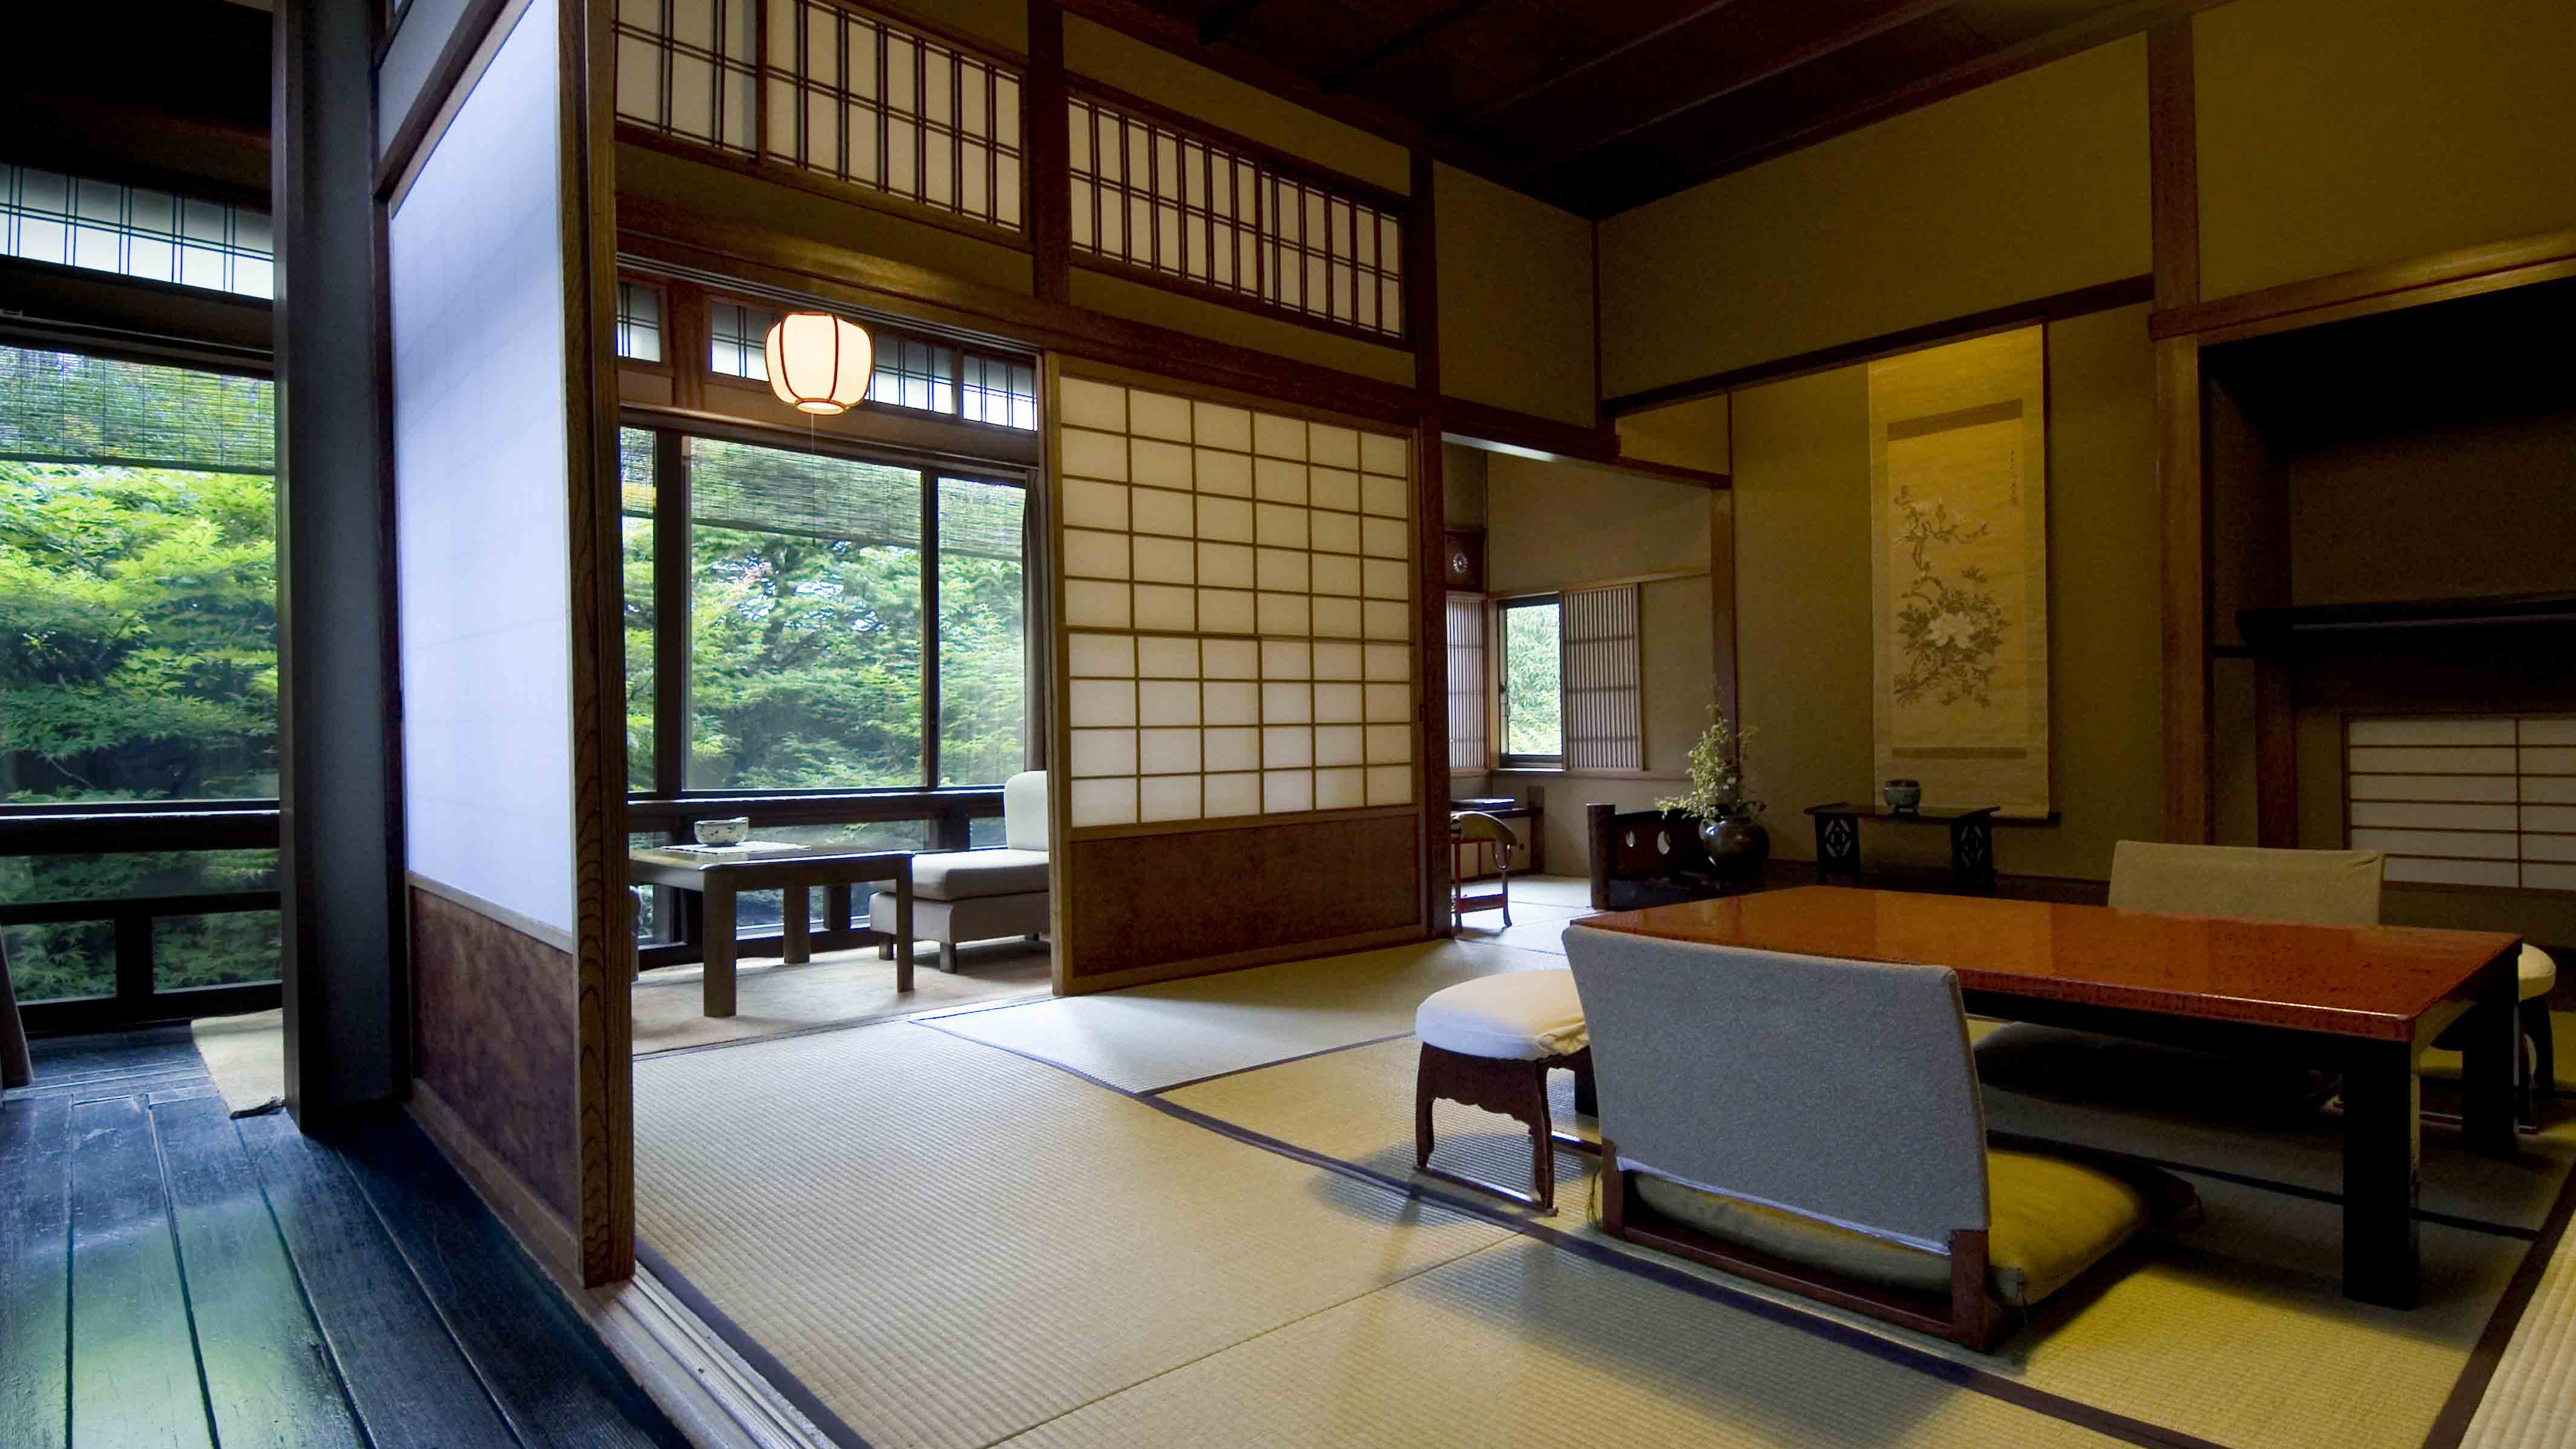 Japan S Most Beautiful Ryokans Encourage You To Do Nothing